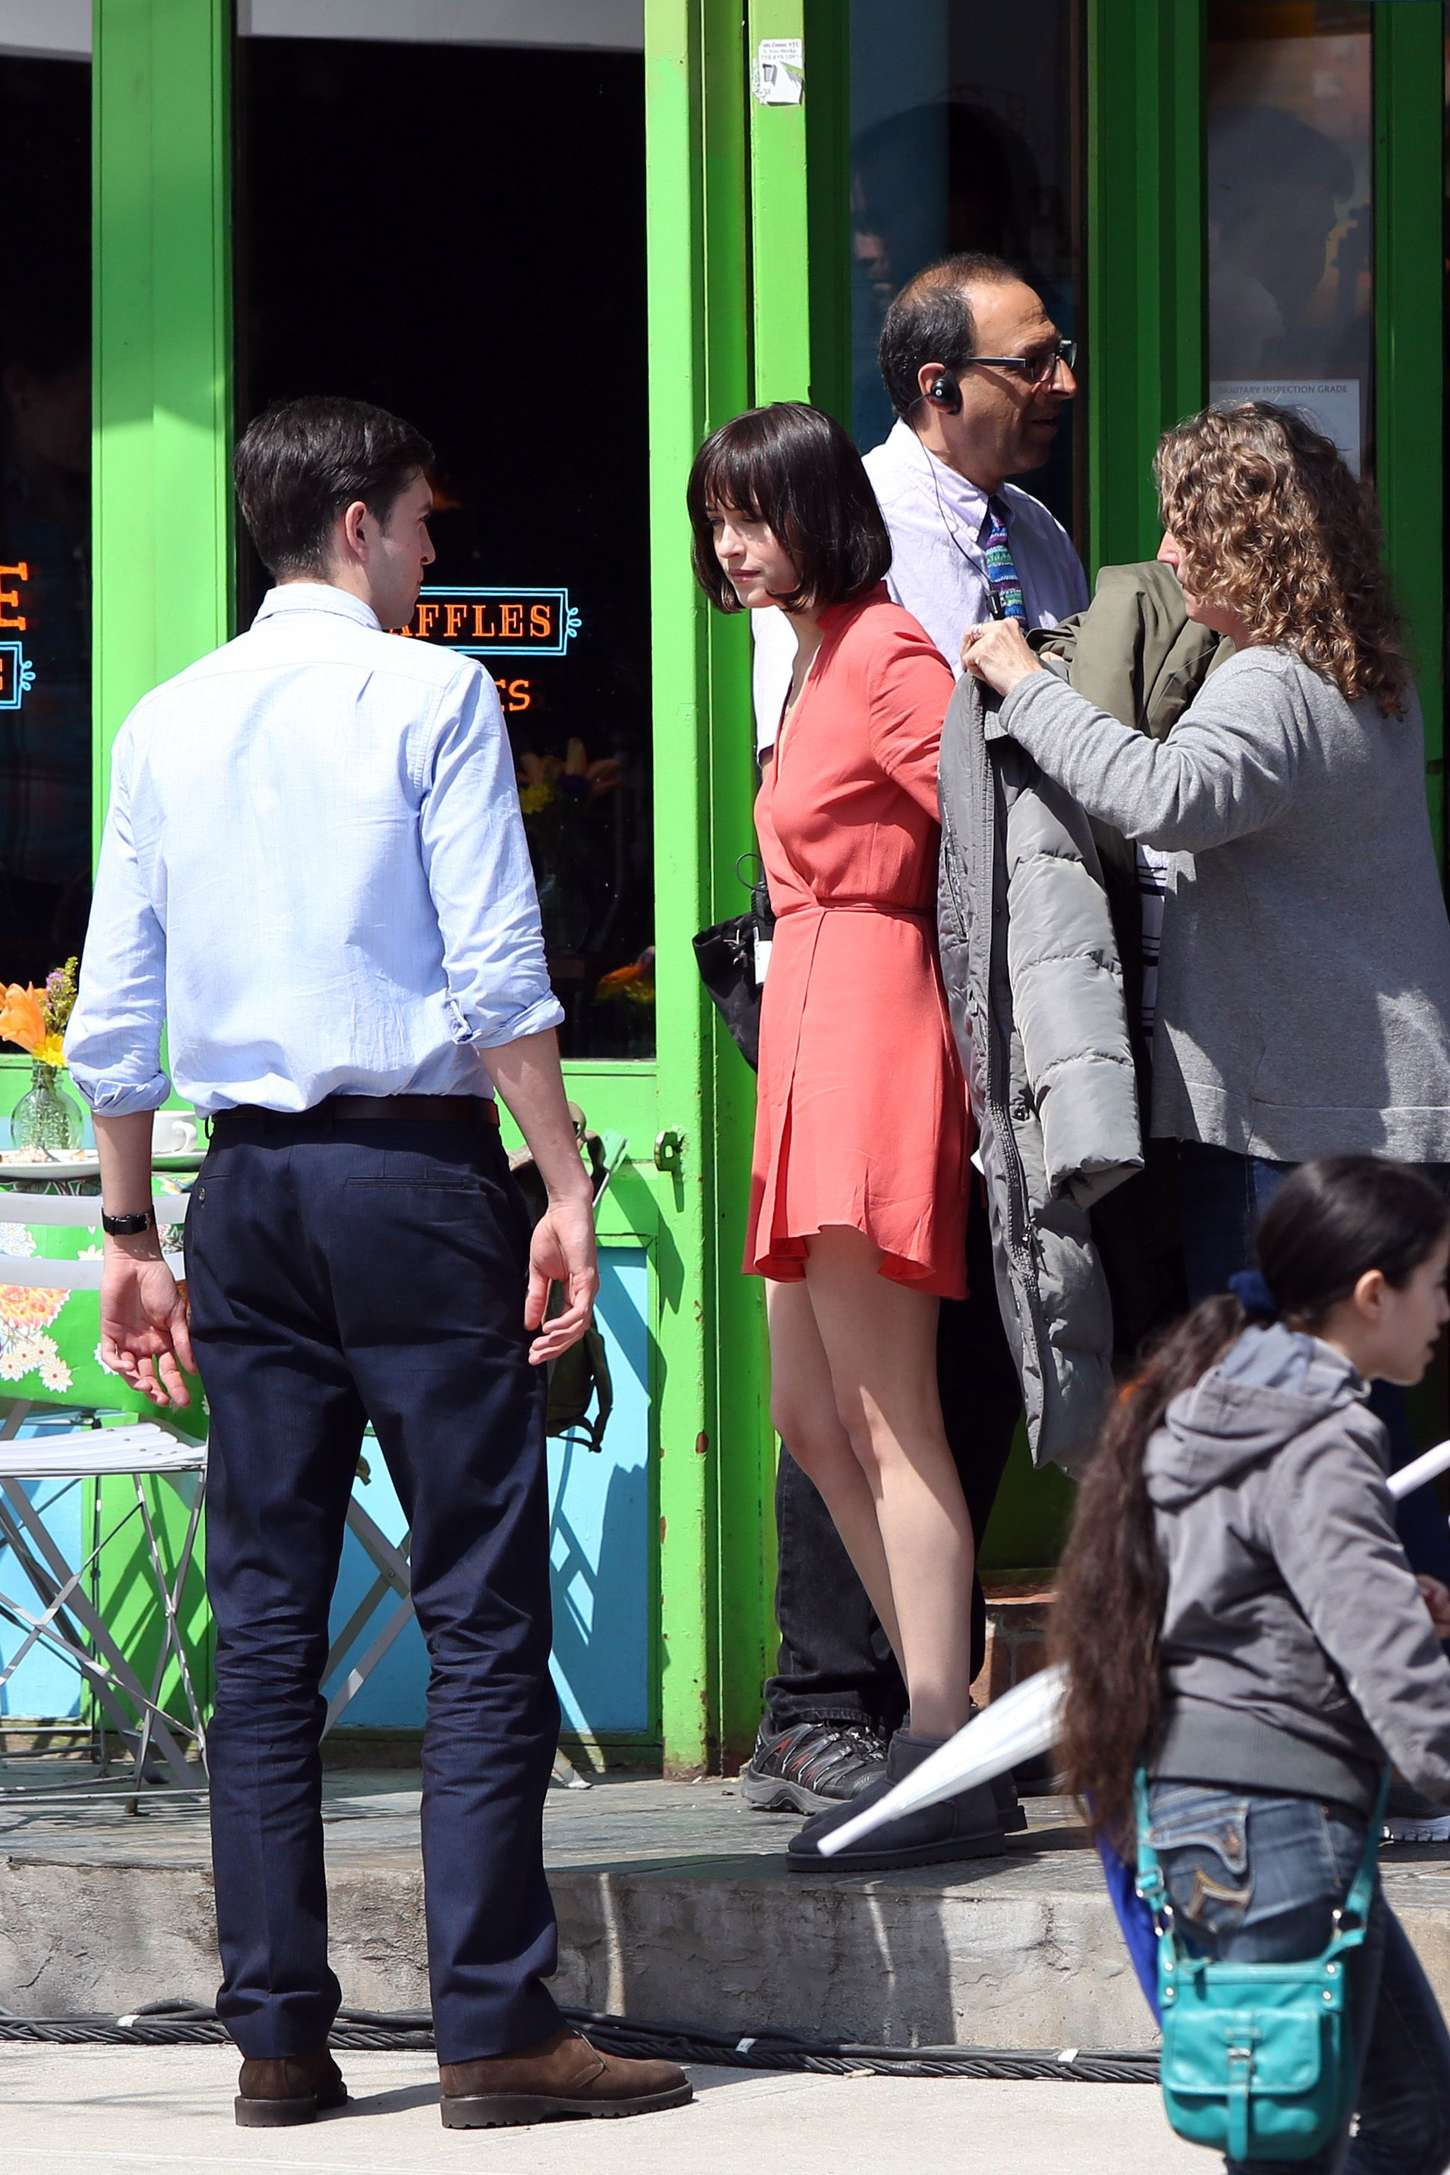 Dakota Johnson In Tight Jeans On How To Be Single Set 29 Full Size